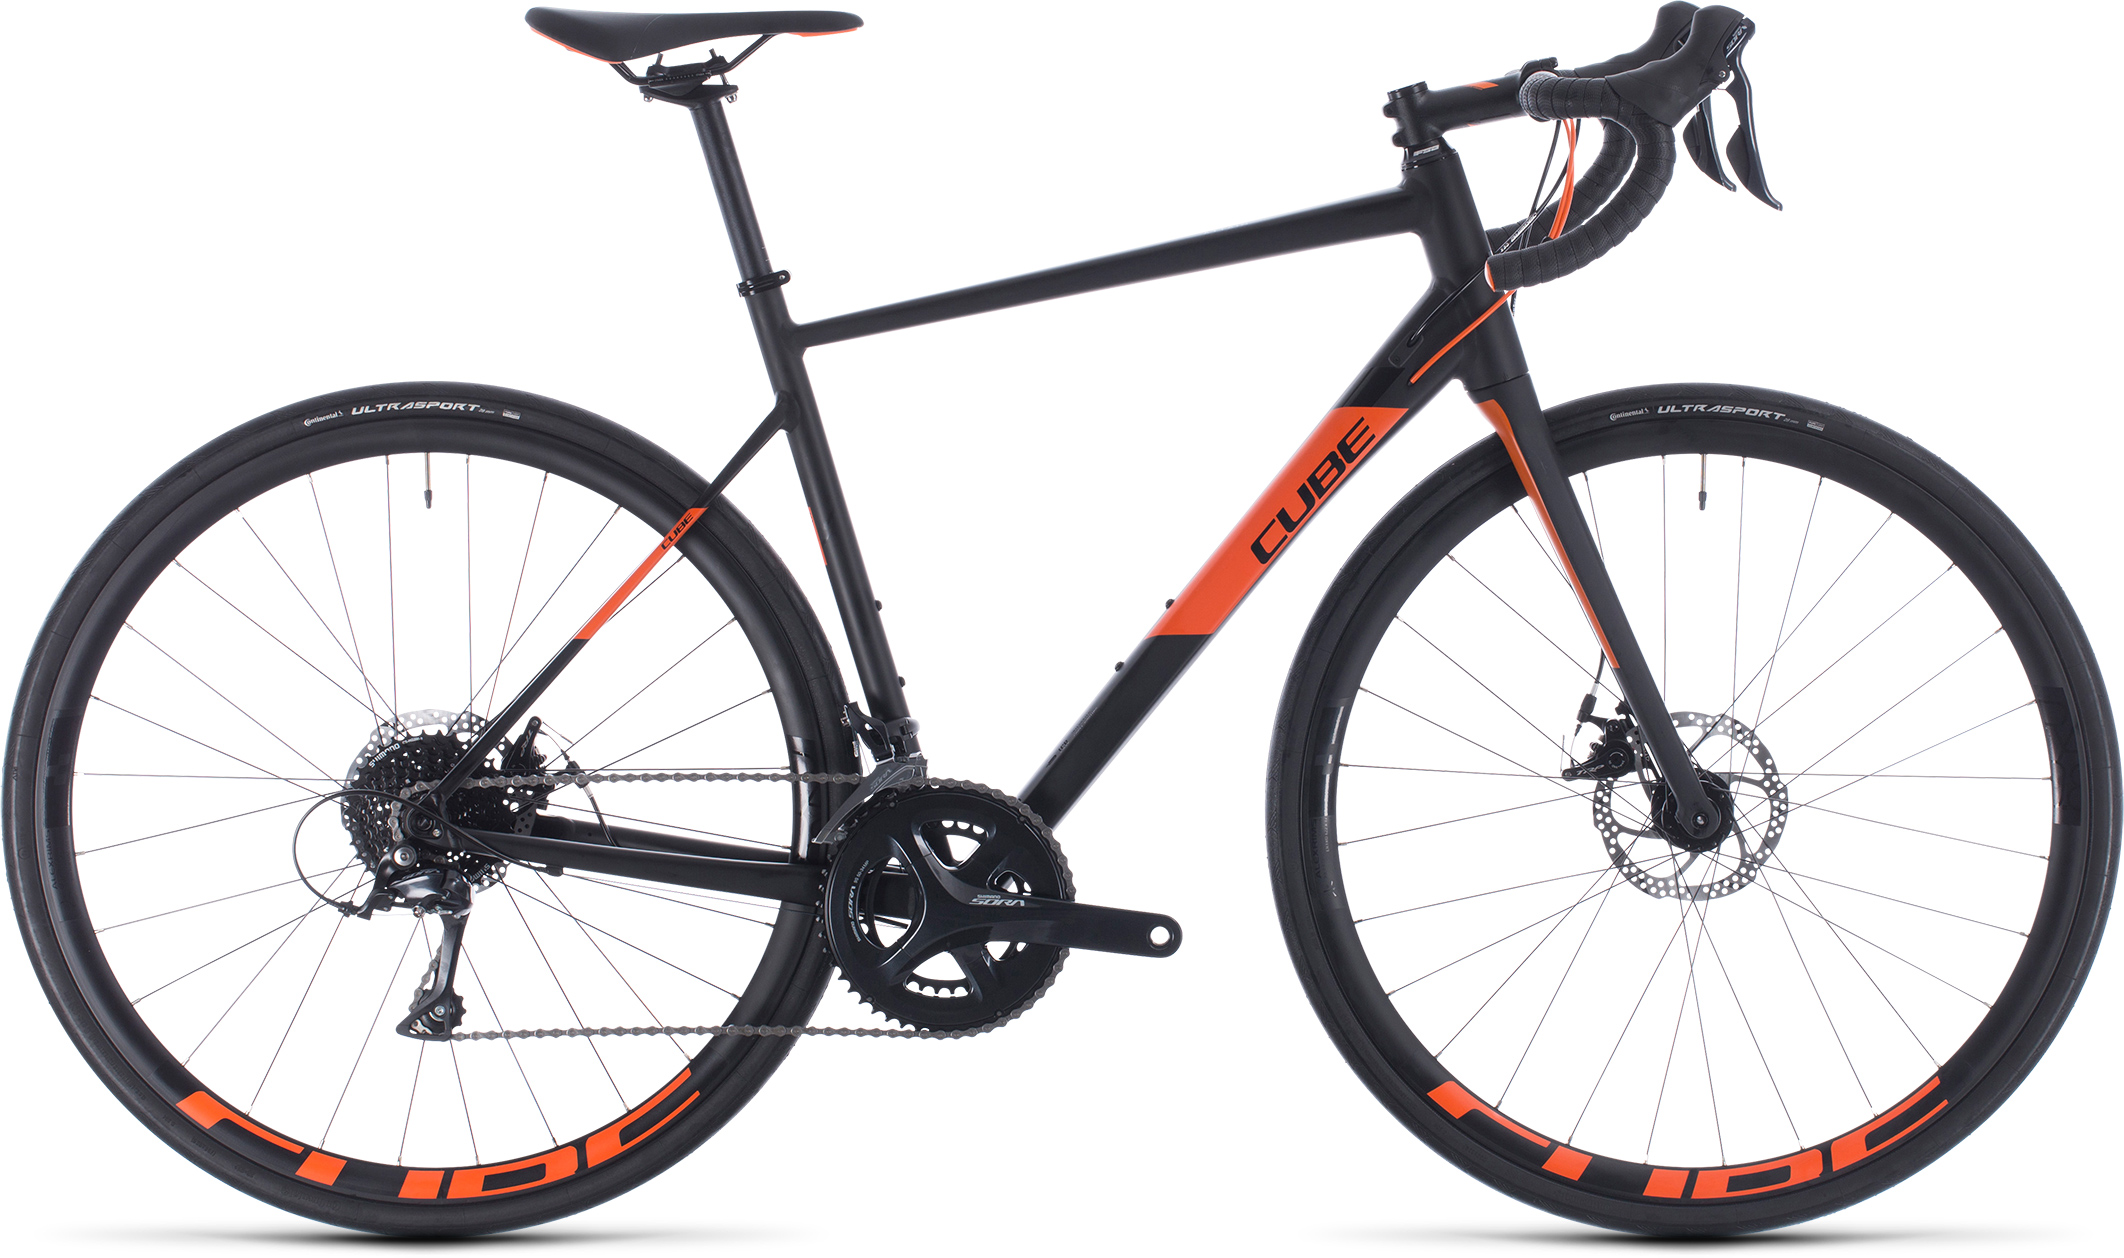 Attain Pro noir et orange | Vélo Station